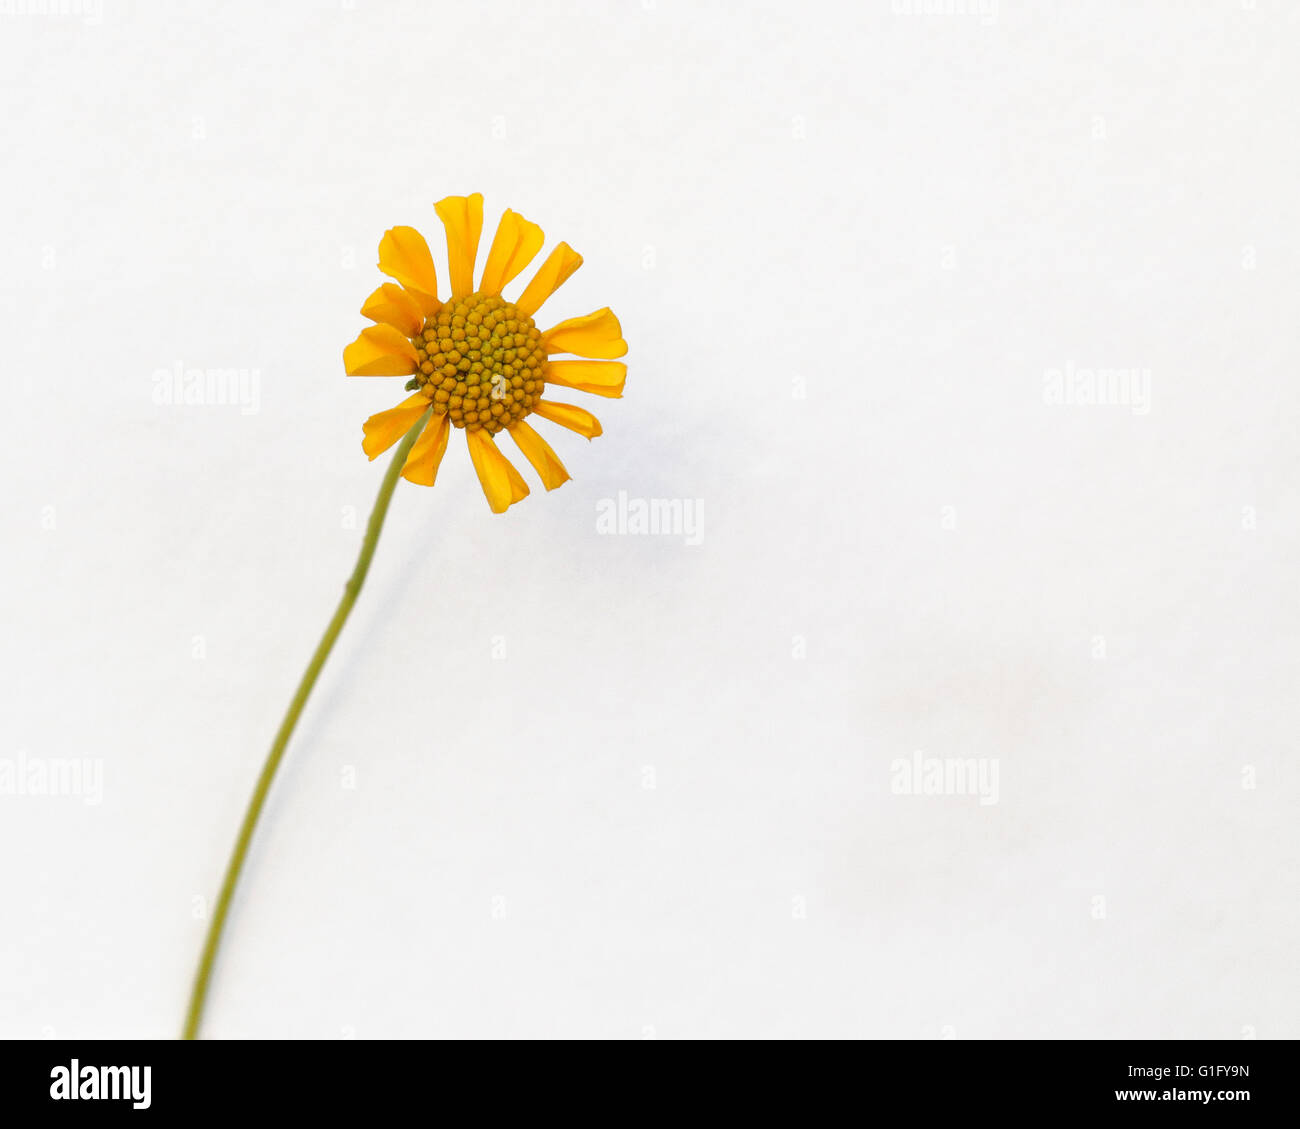 The Brittle Bush Flower - Stock Image